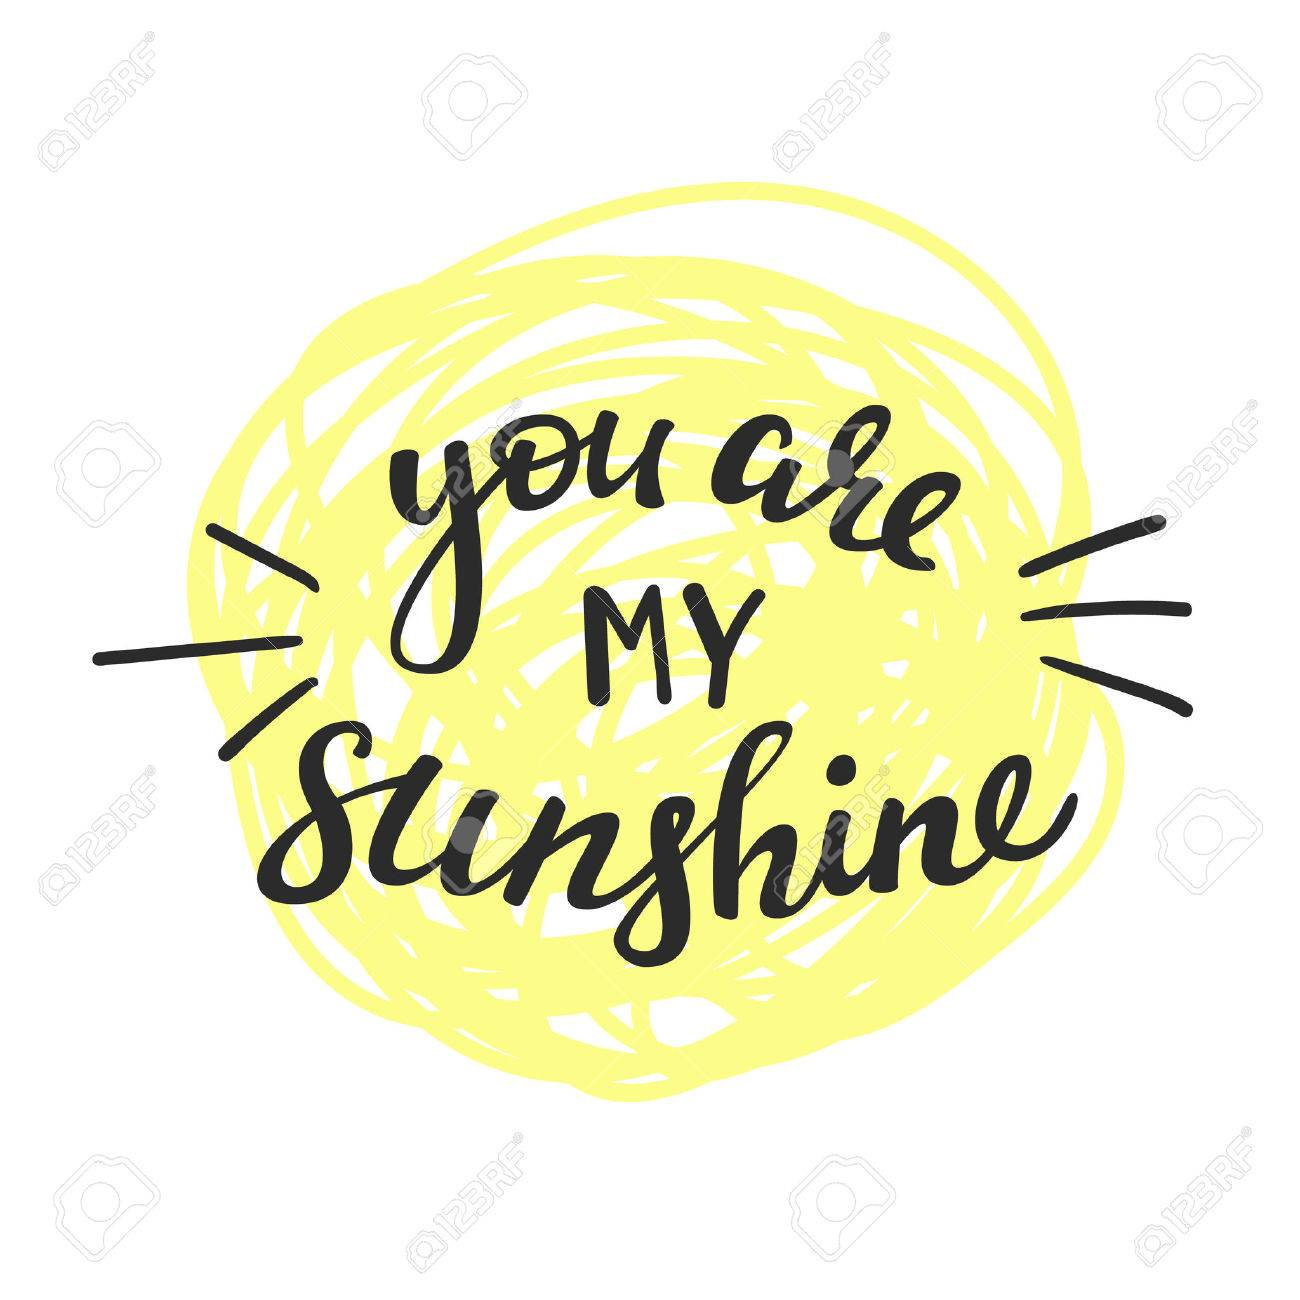 You Are My Sunshine Lettering Motivational Quote Romantic